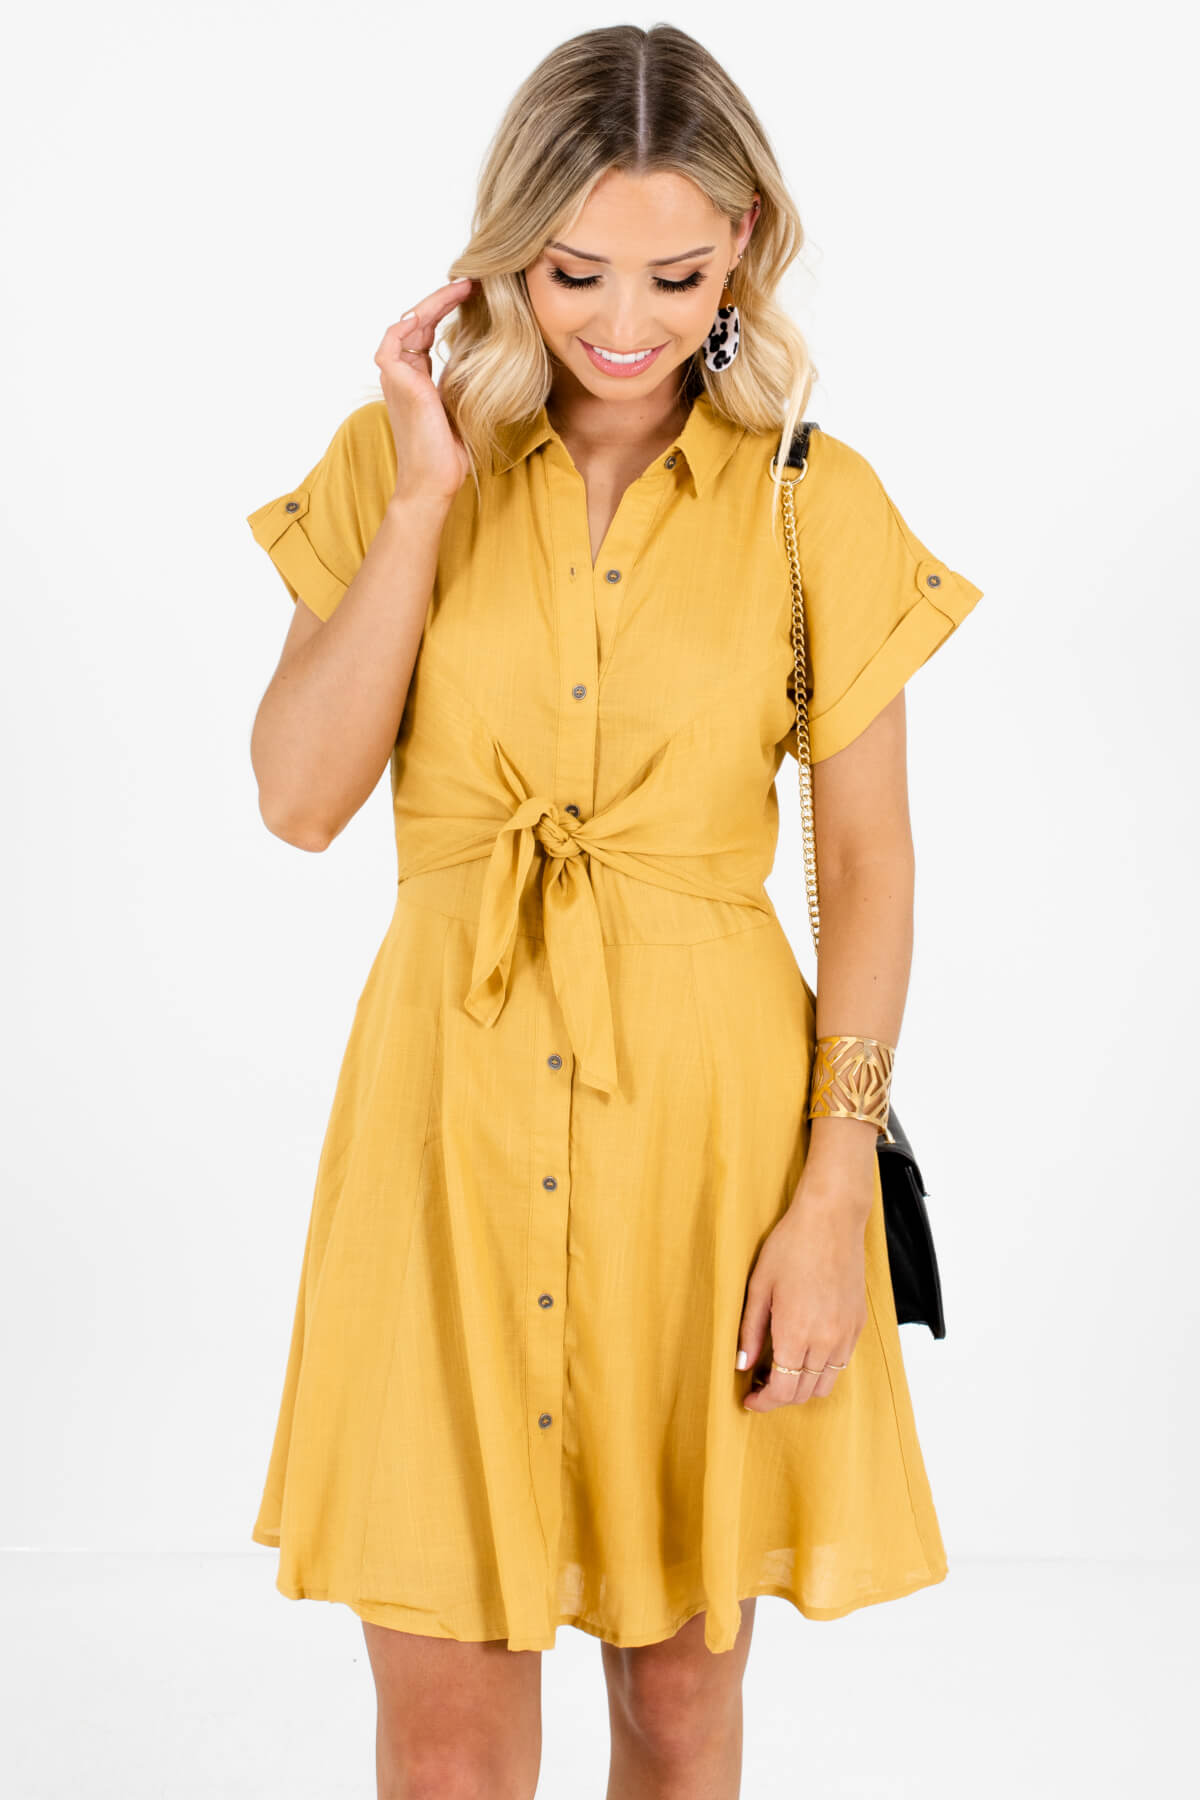 Mustard Yellow Button-Up Front Boutique Mini Dresses for Women